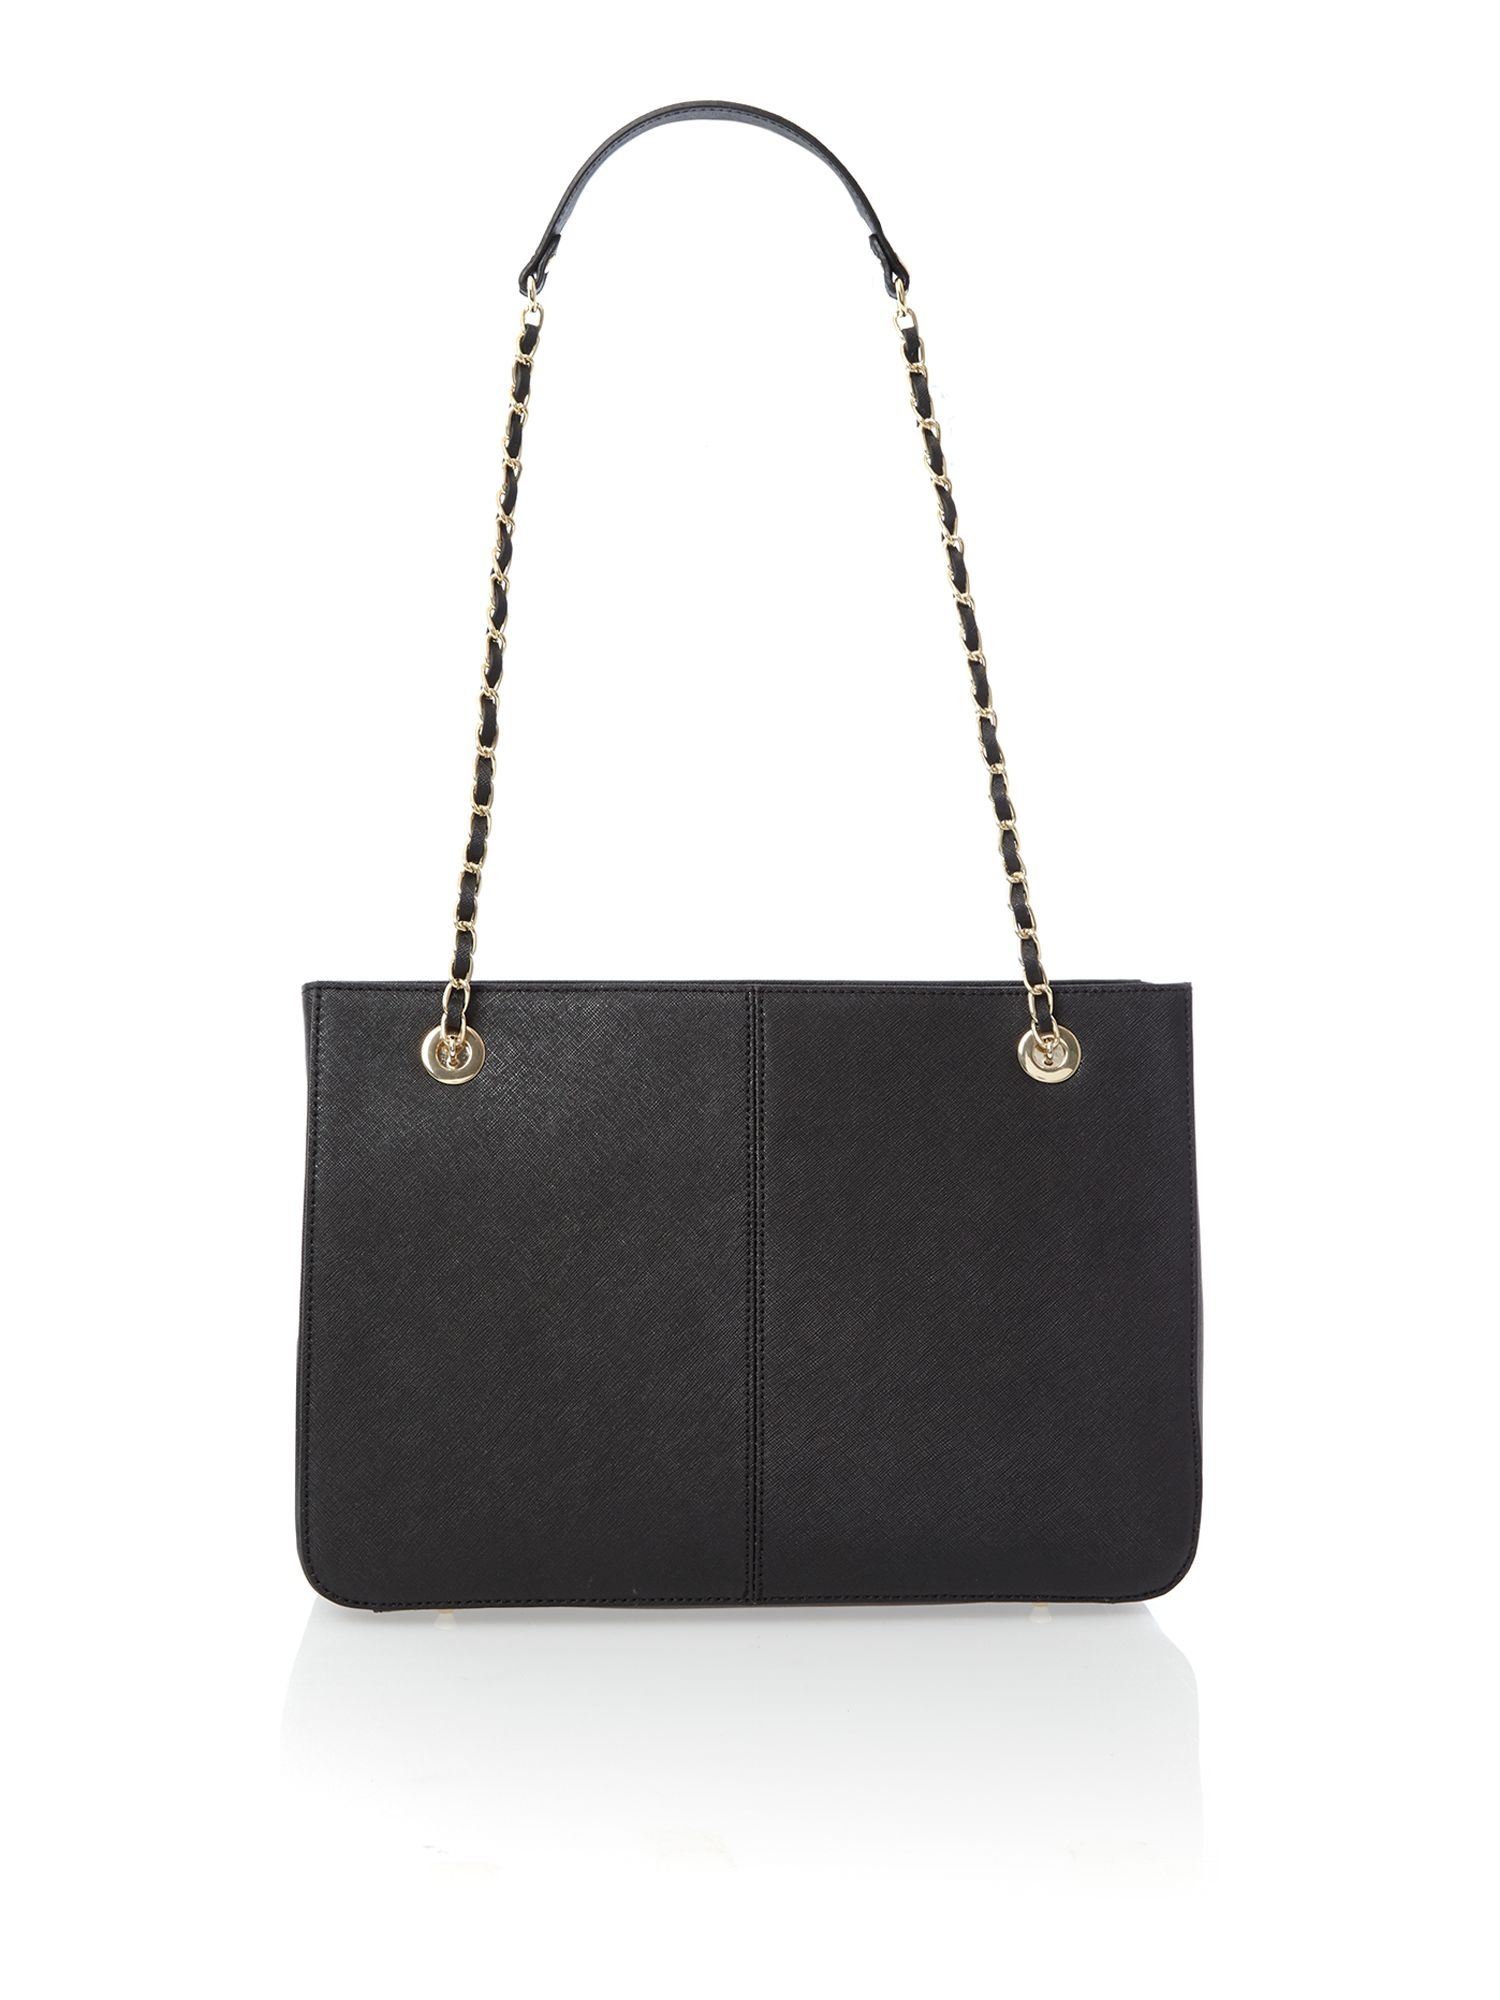 Saffiano black medium chain tote bag